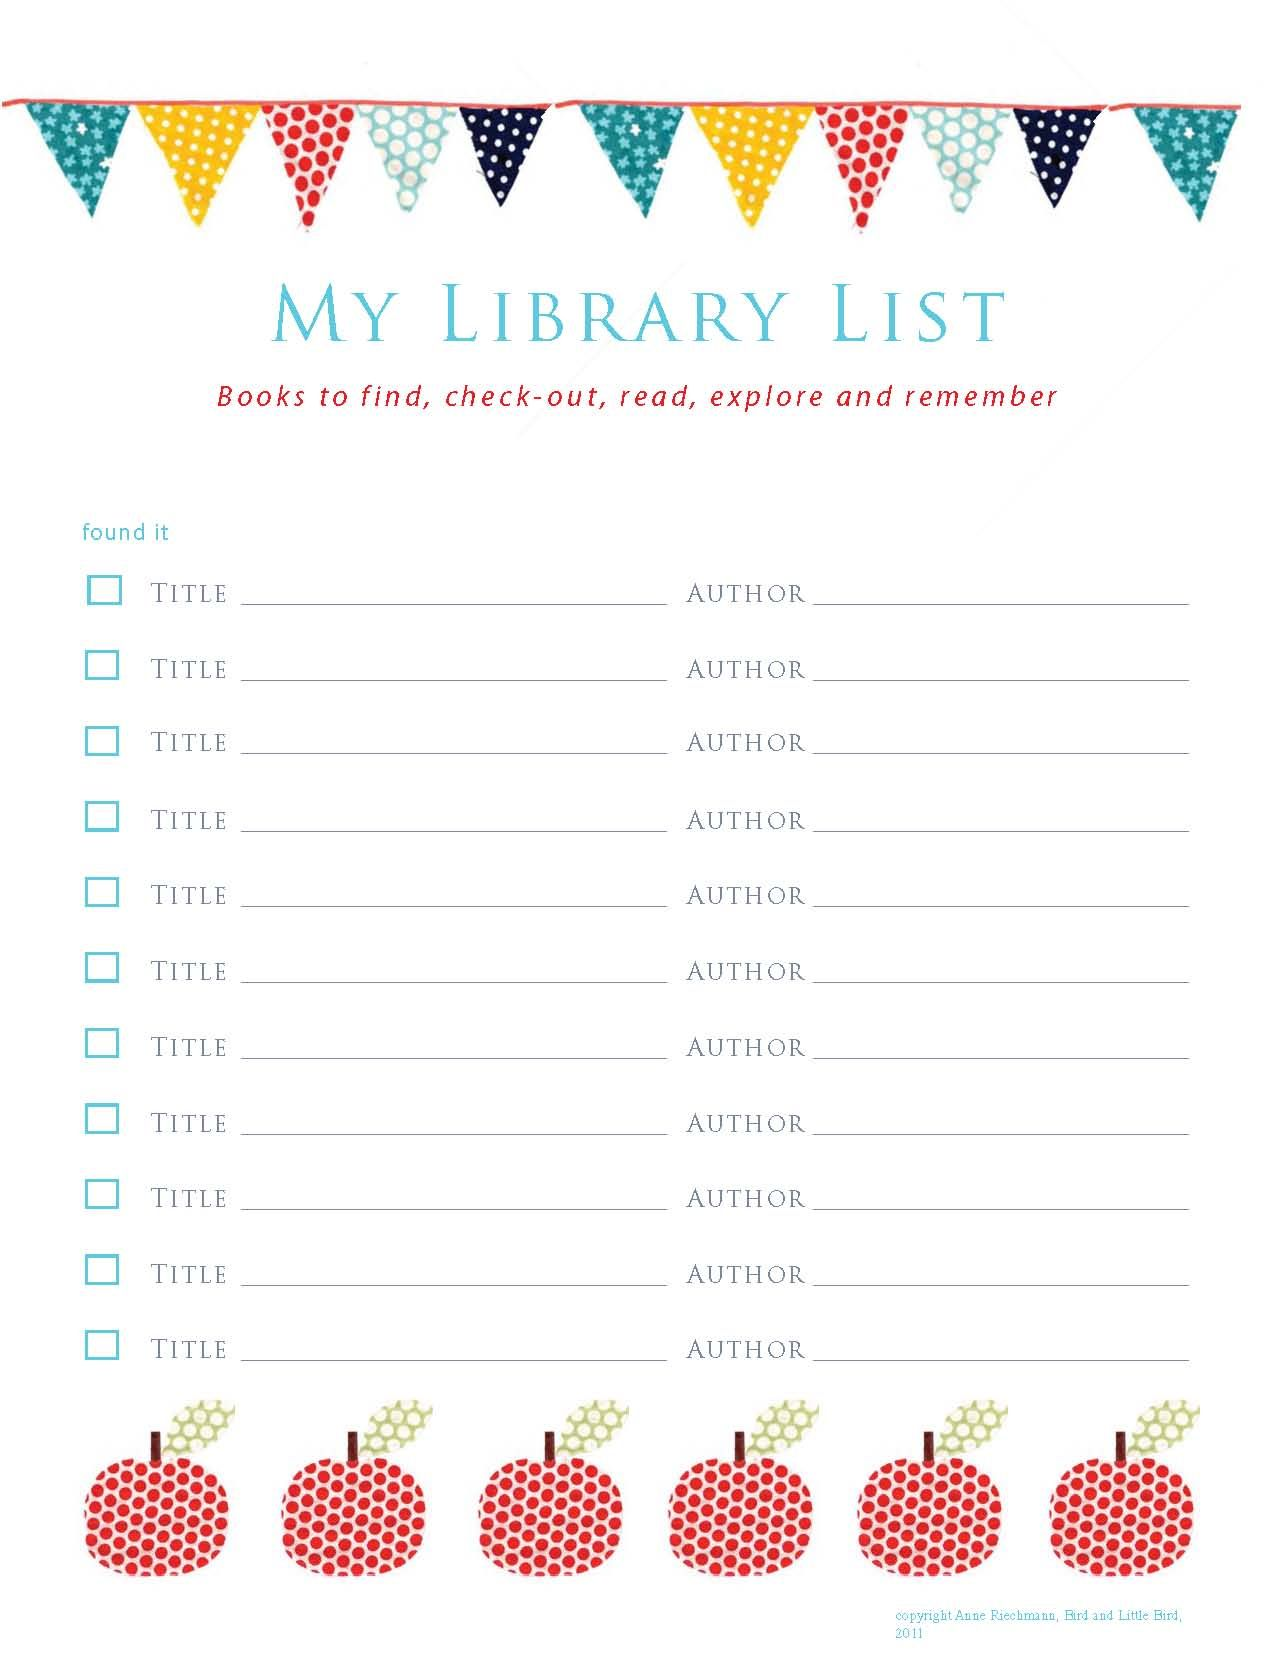 My Library List